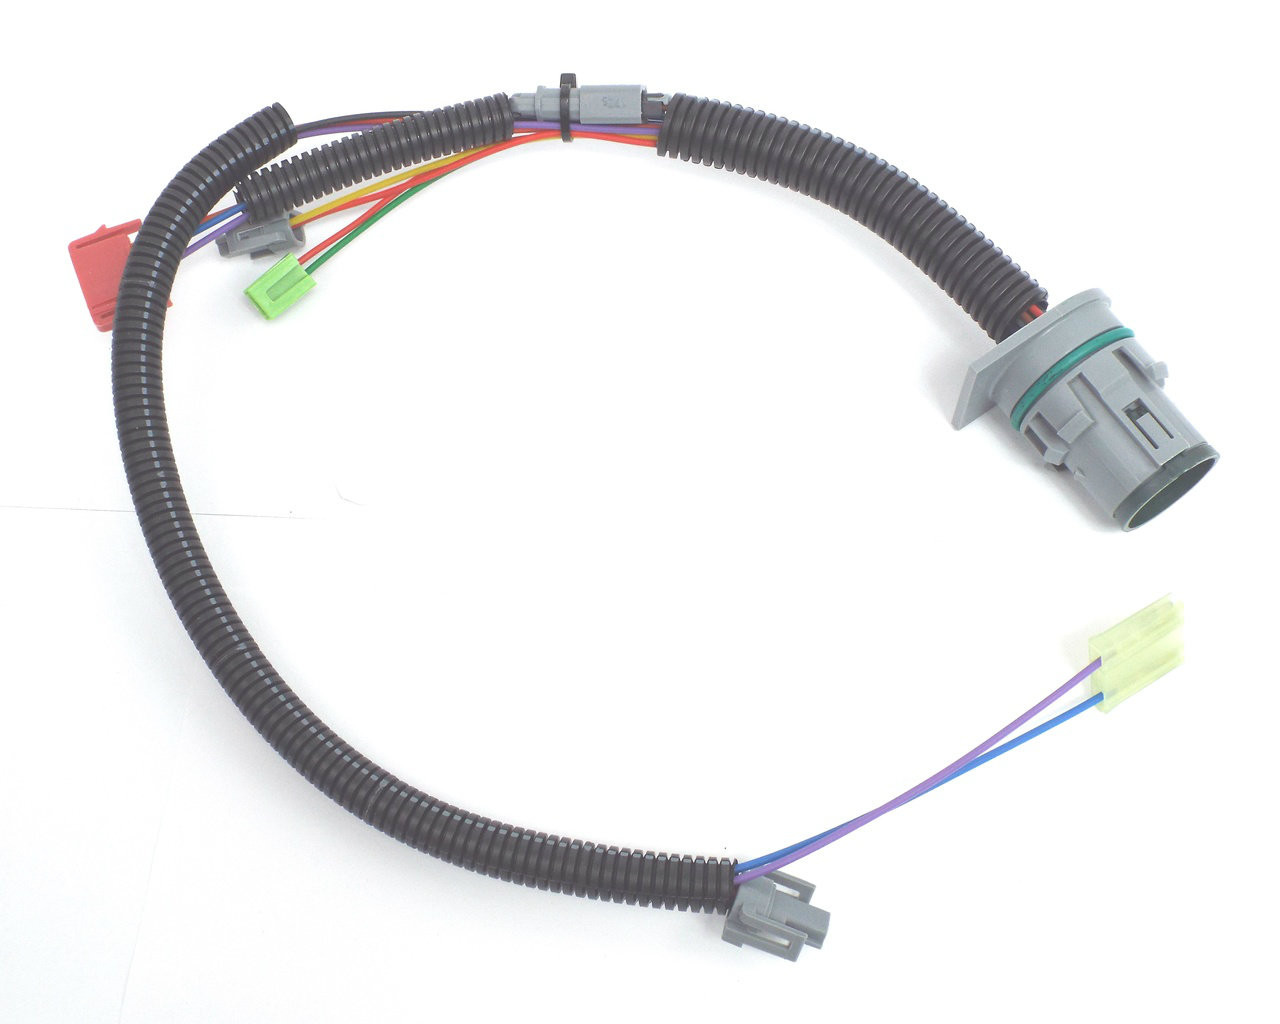 4l80e internal wiring harness (1991 2003) 24222798 Car Wiring Harness Color Code